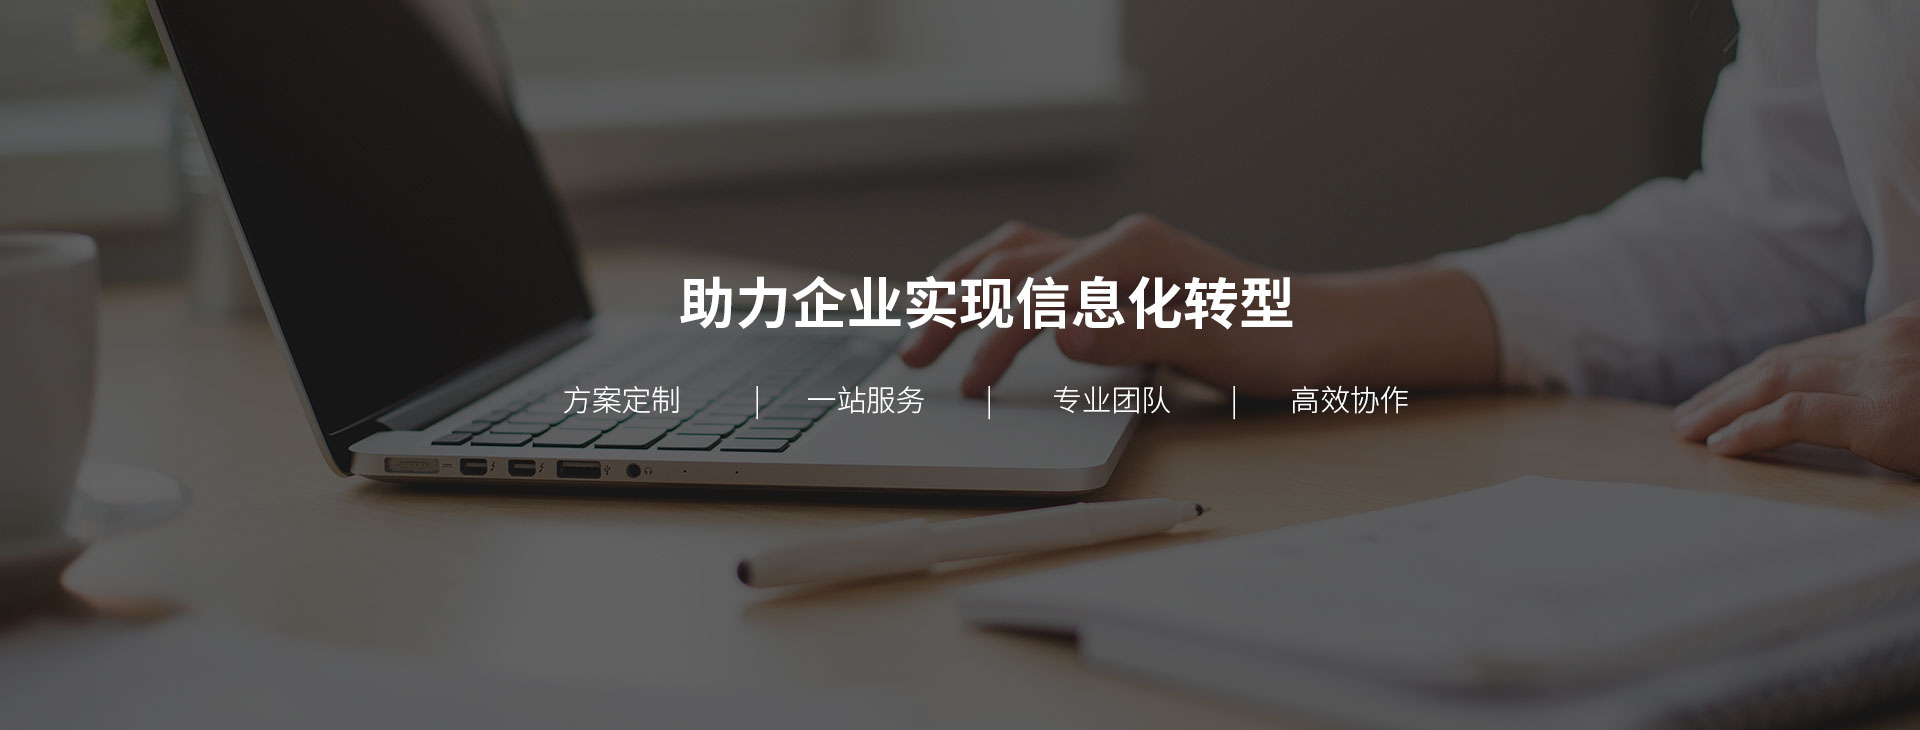 <strong>助力企业信息化转型</strong>